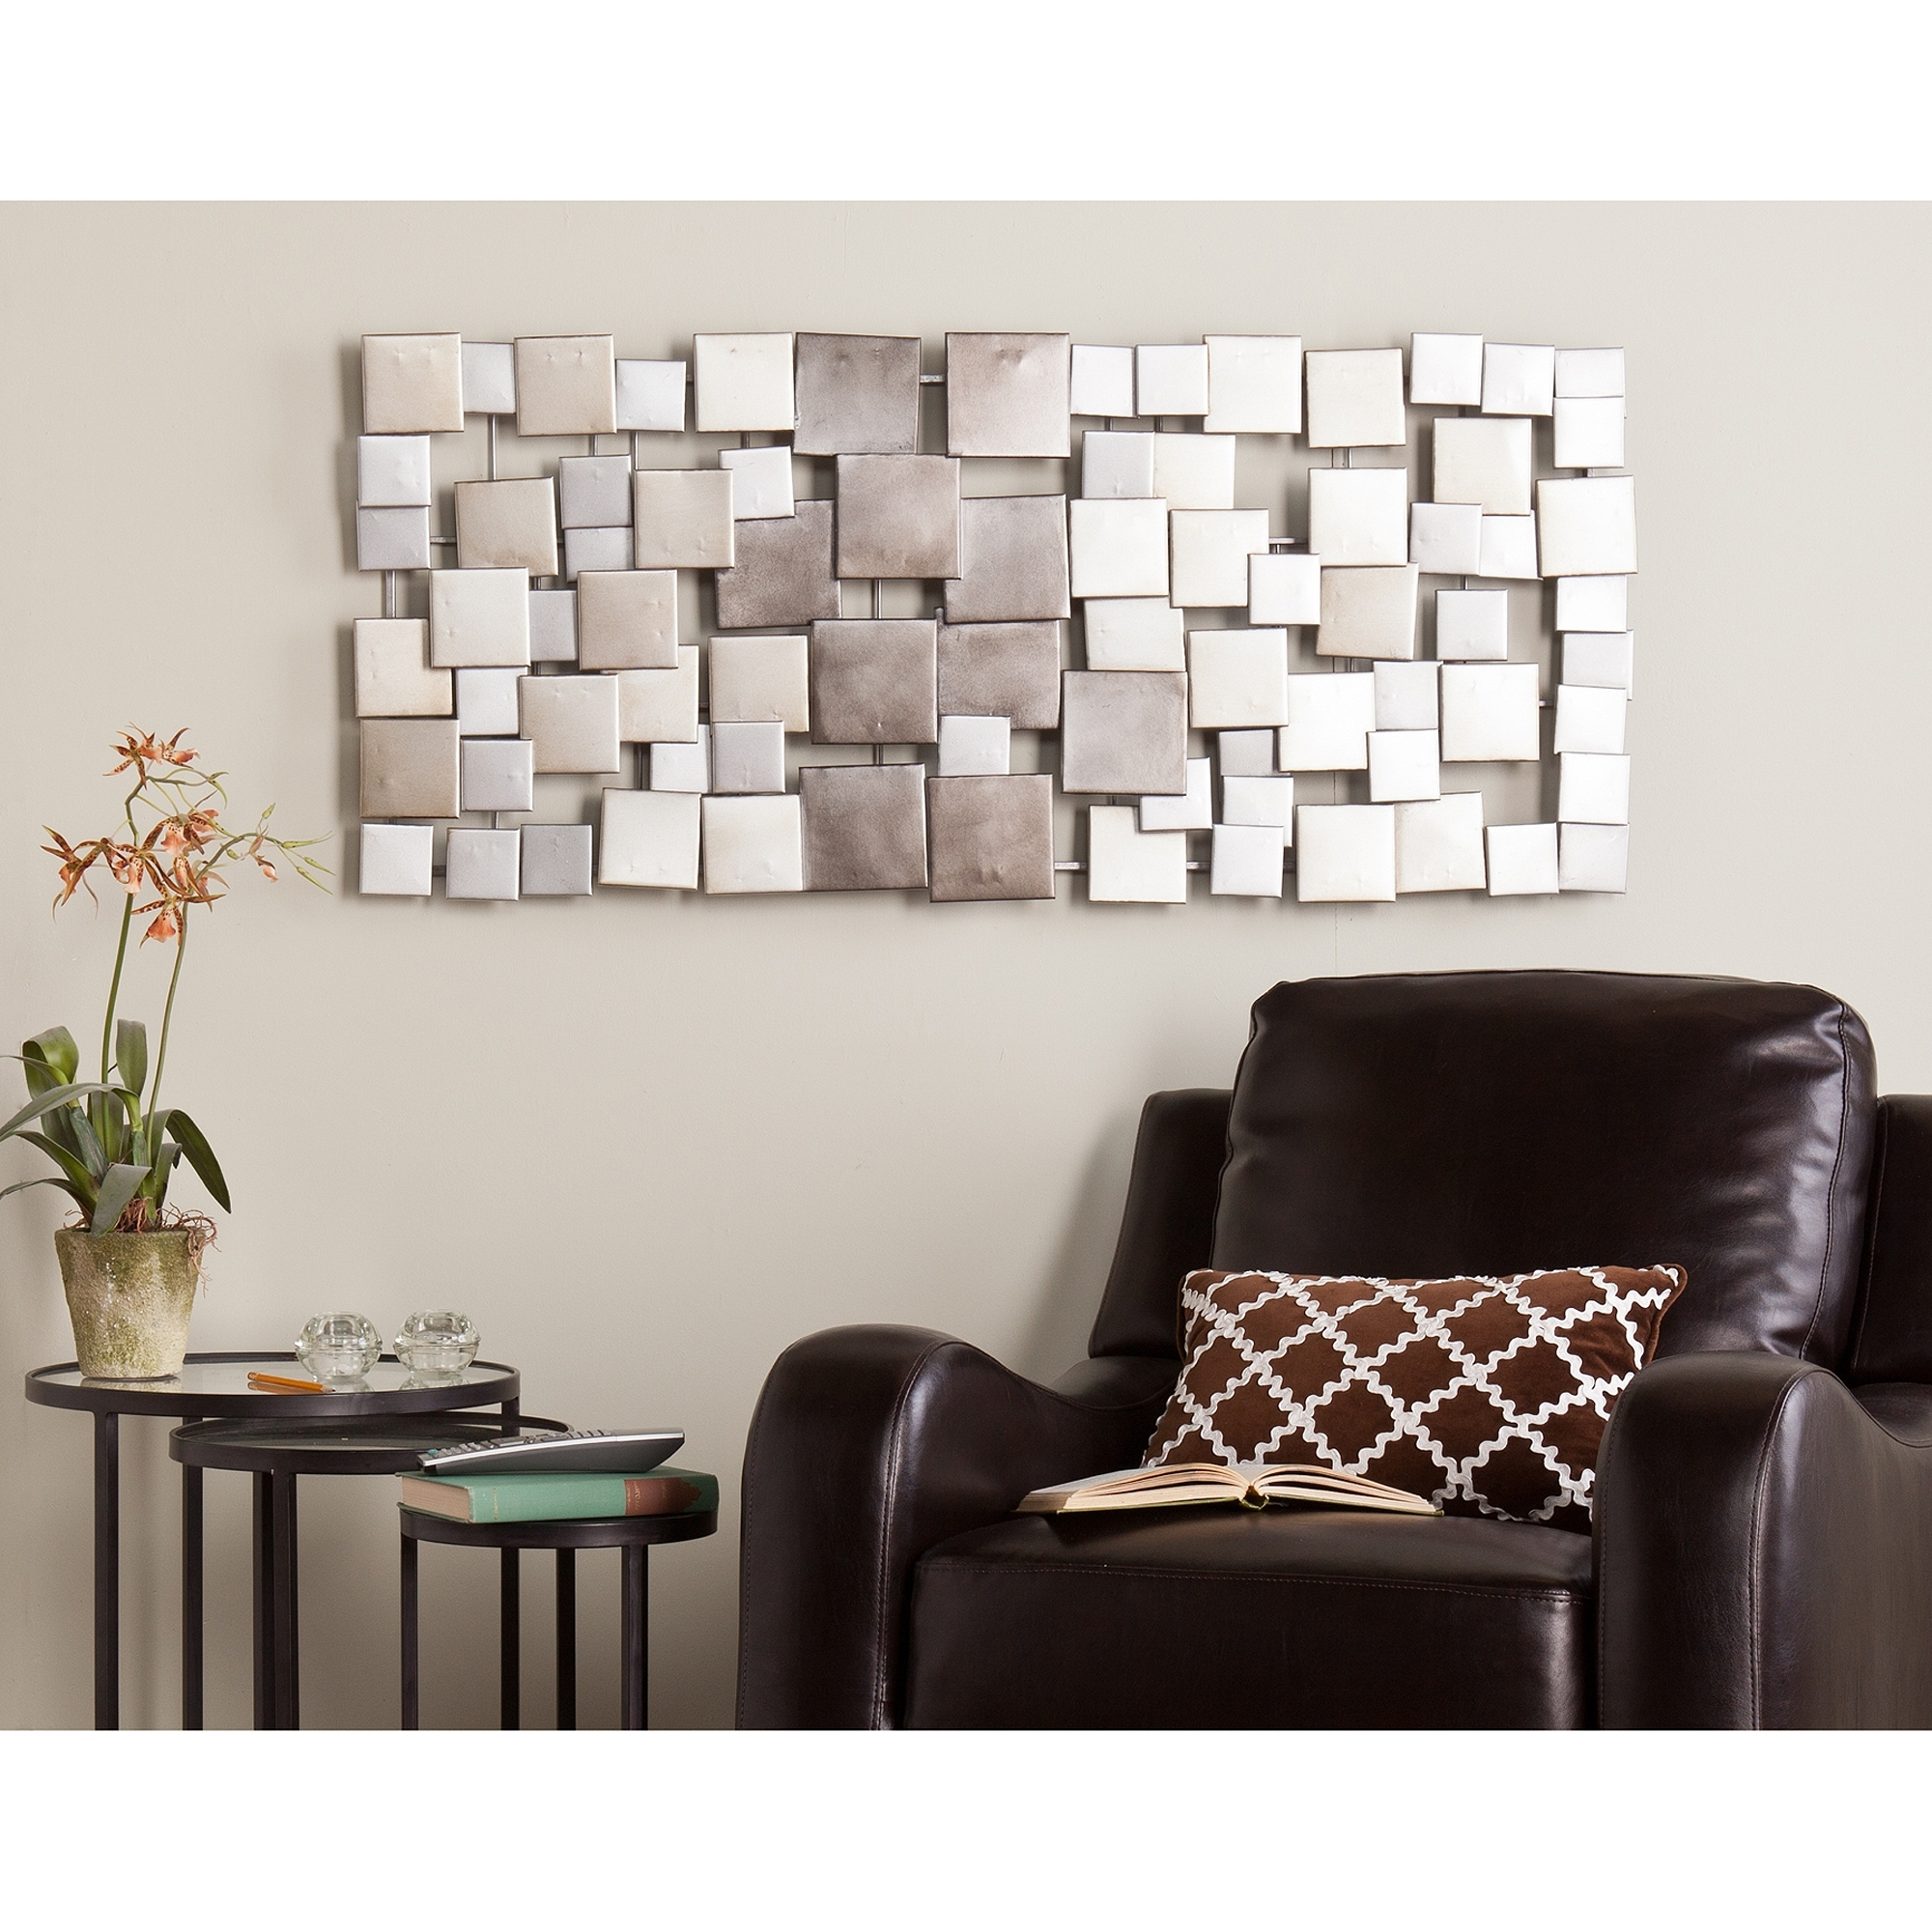 Rectangular Metal Wall Art Pertaining To Current Metal Wall Art – Walmart (Gallery 10 of 15)